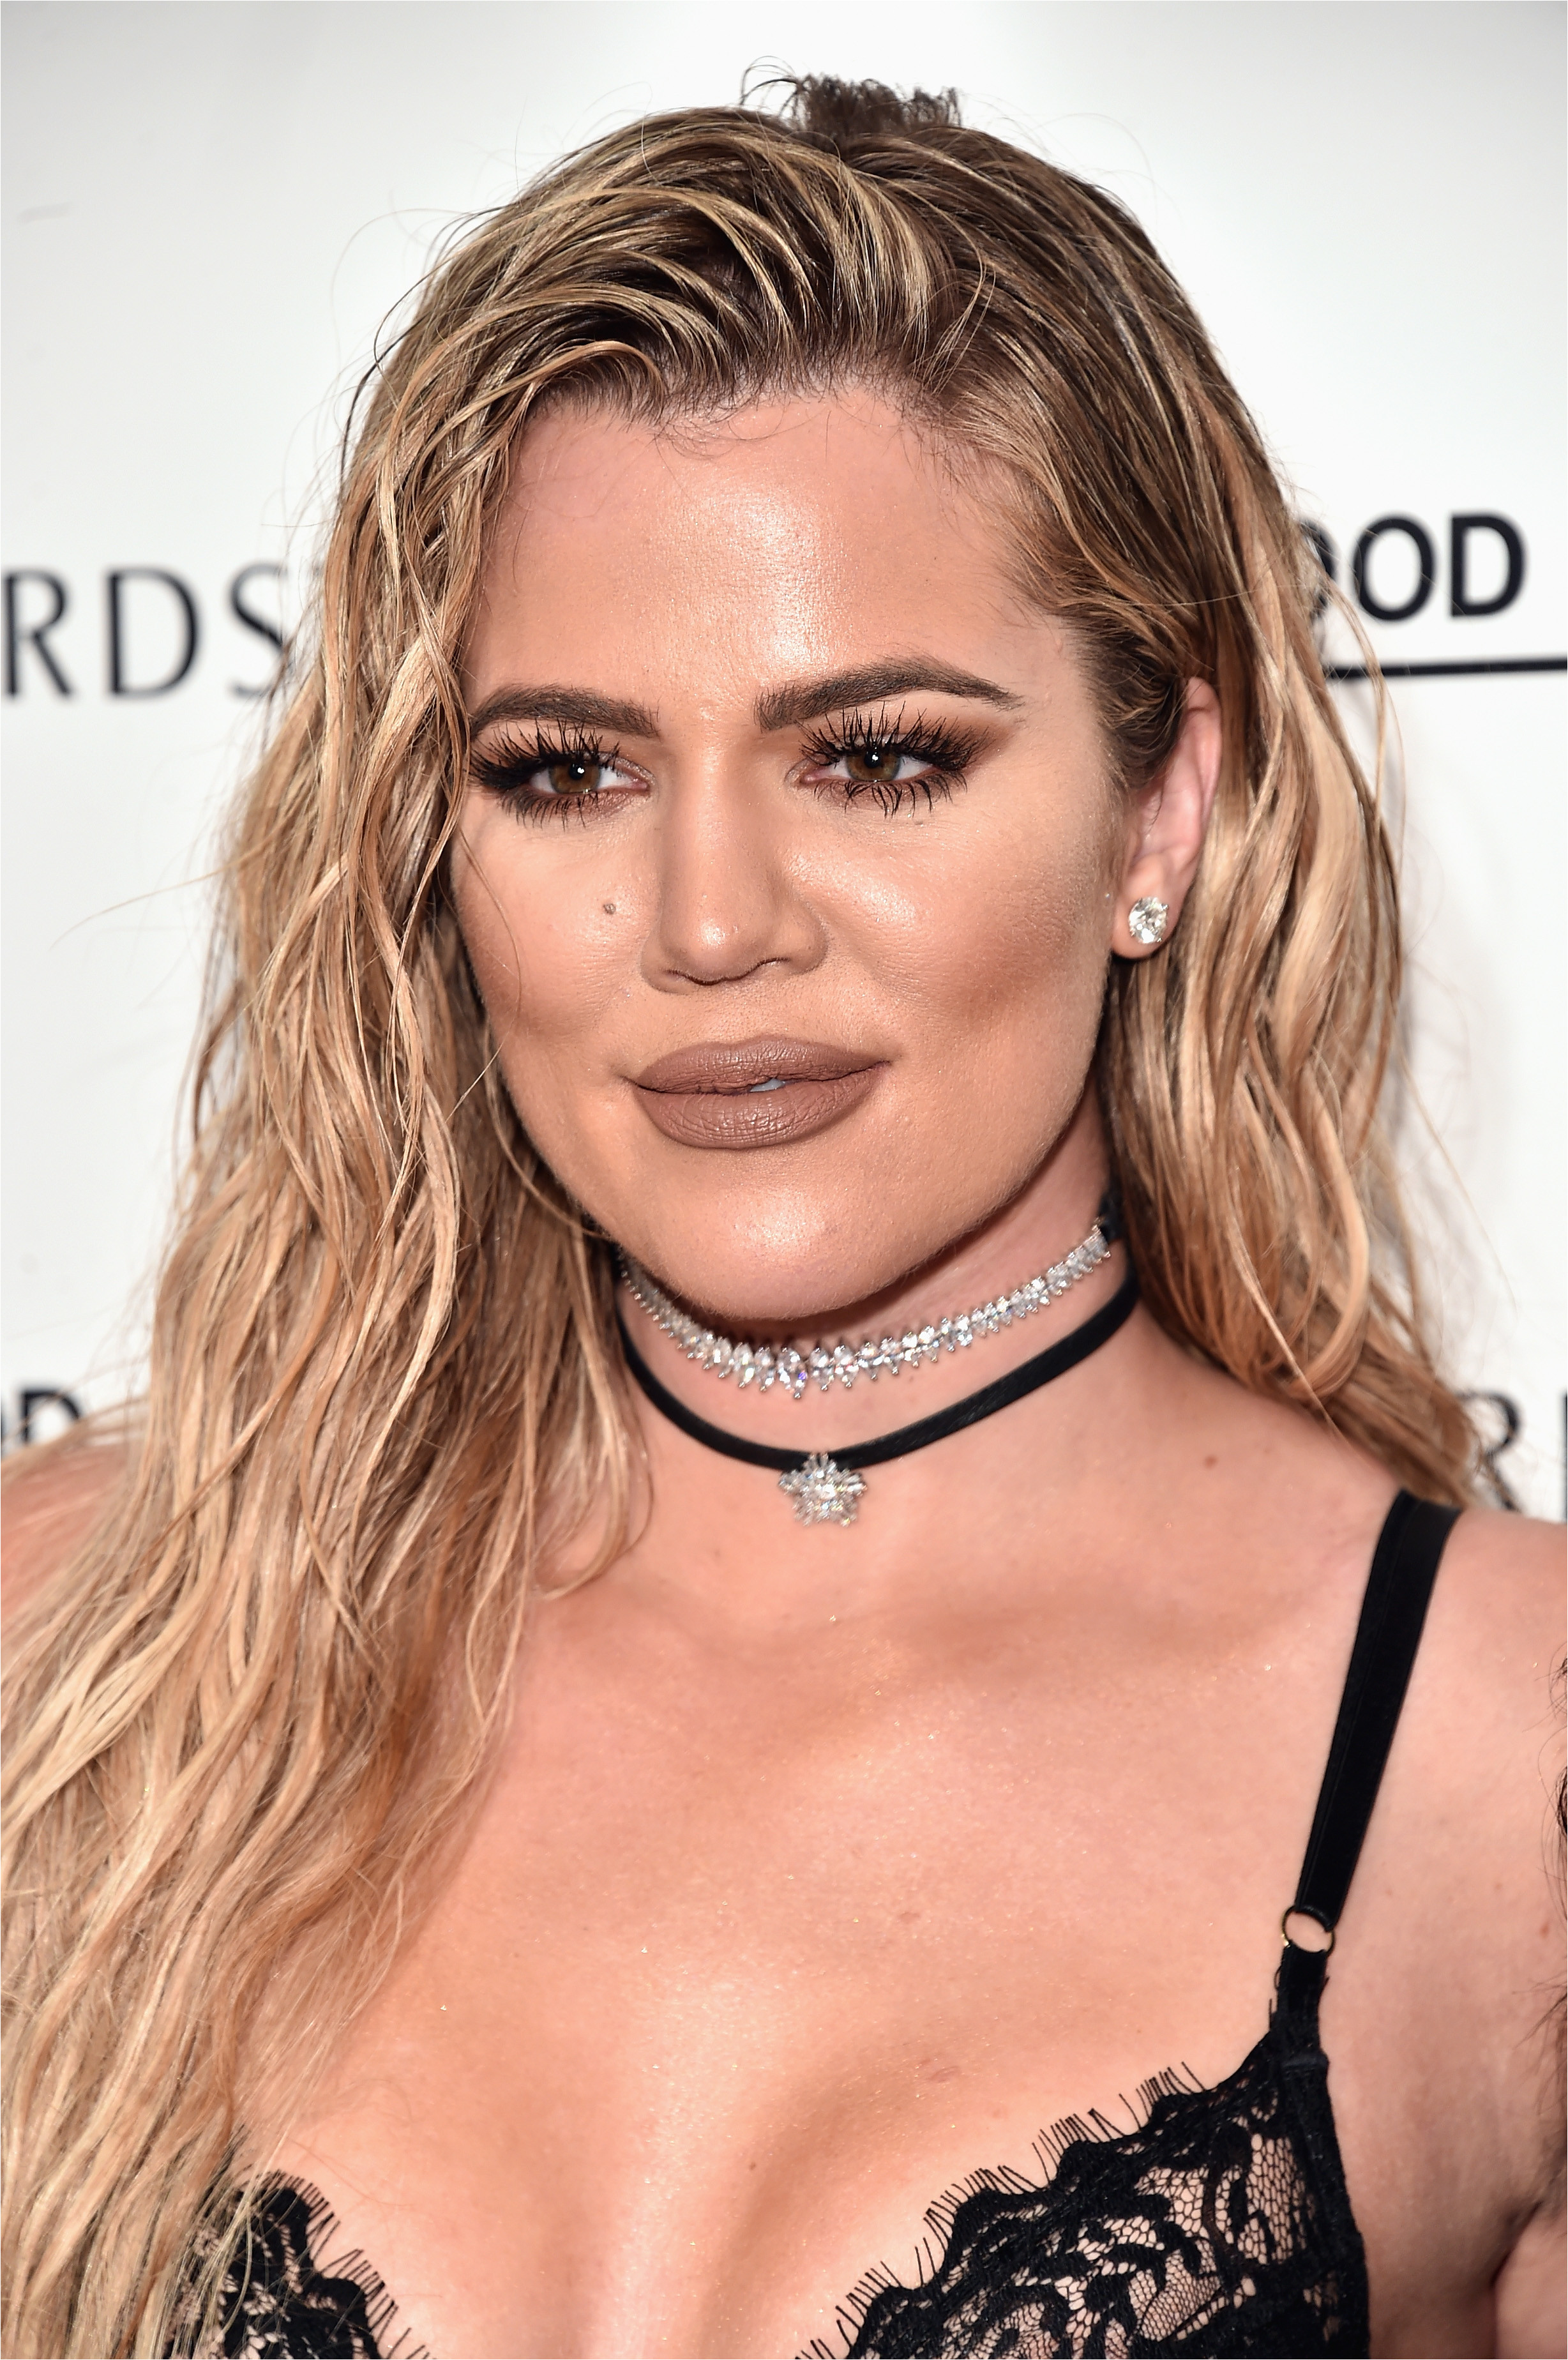 How Did Khloe Kardashian & Tristan Thompson Meet It Was Actually Pretty Normal